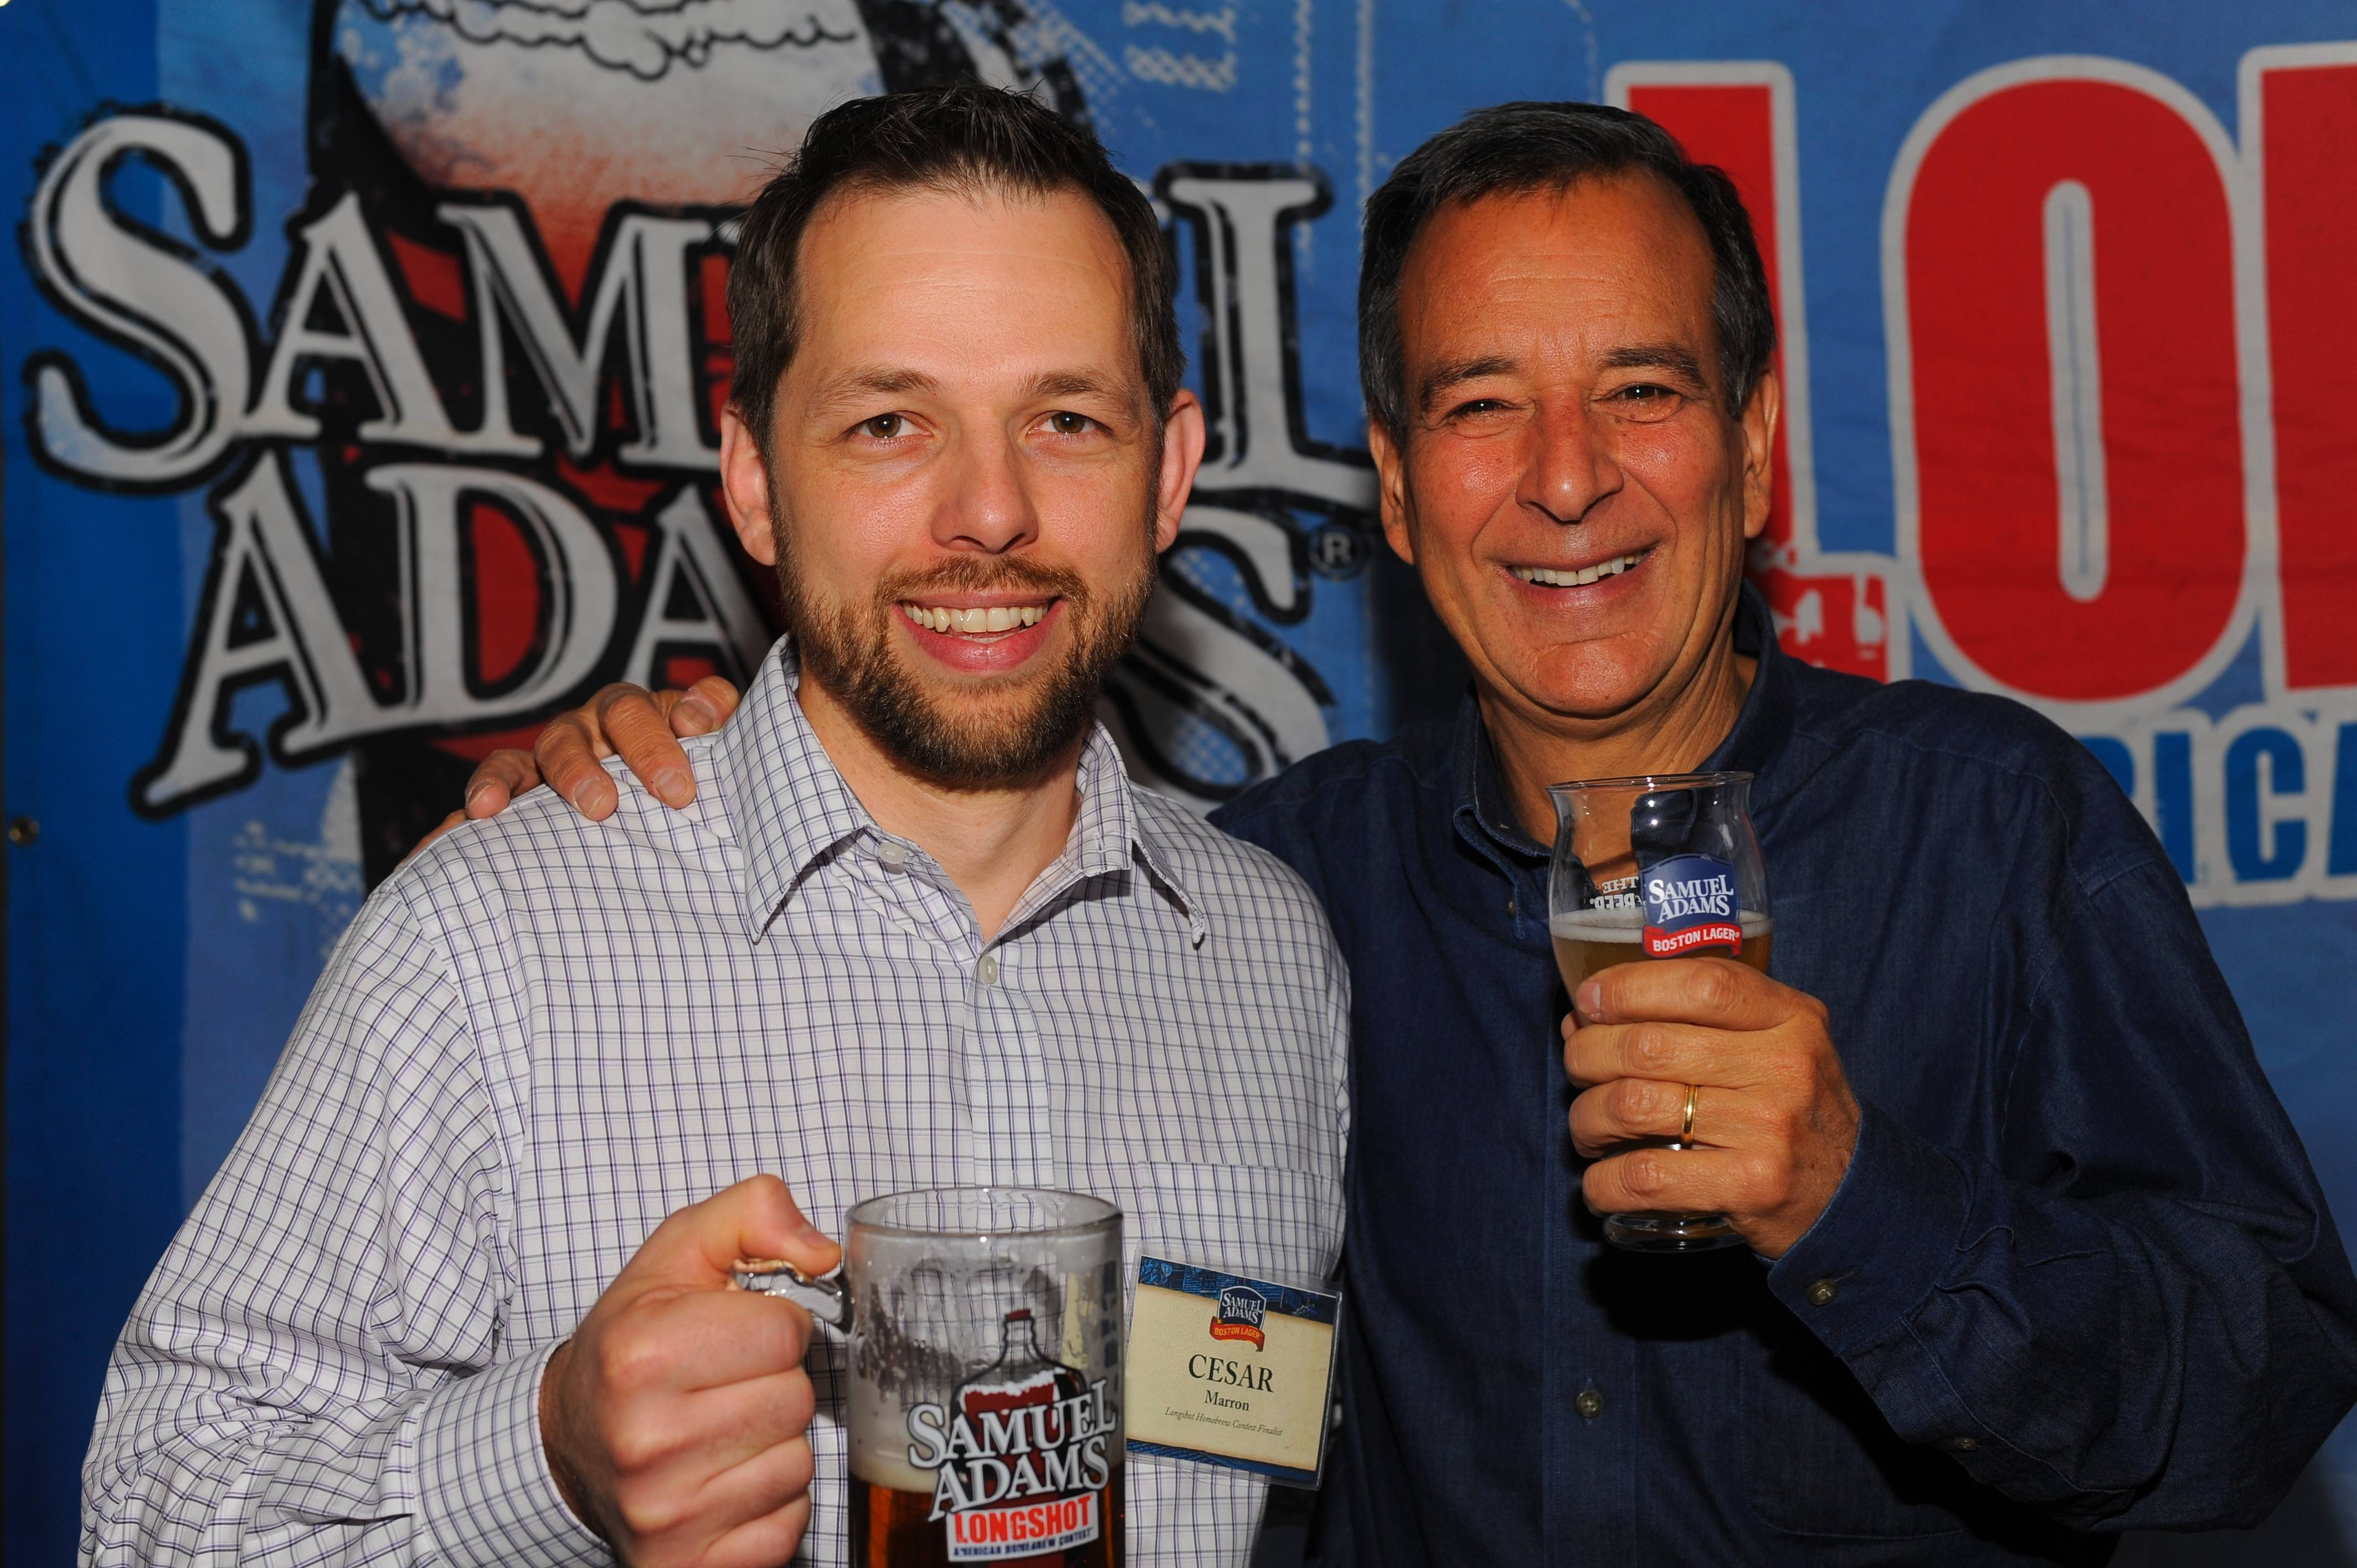 Cesar Marron, left, celebrates winning the LongShot Homebrew Contest with Samuel Adams founder Jim Koch.